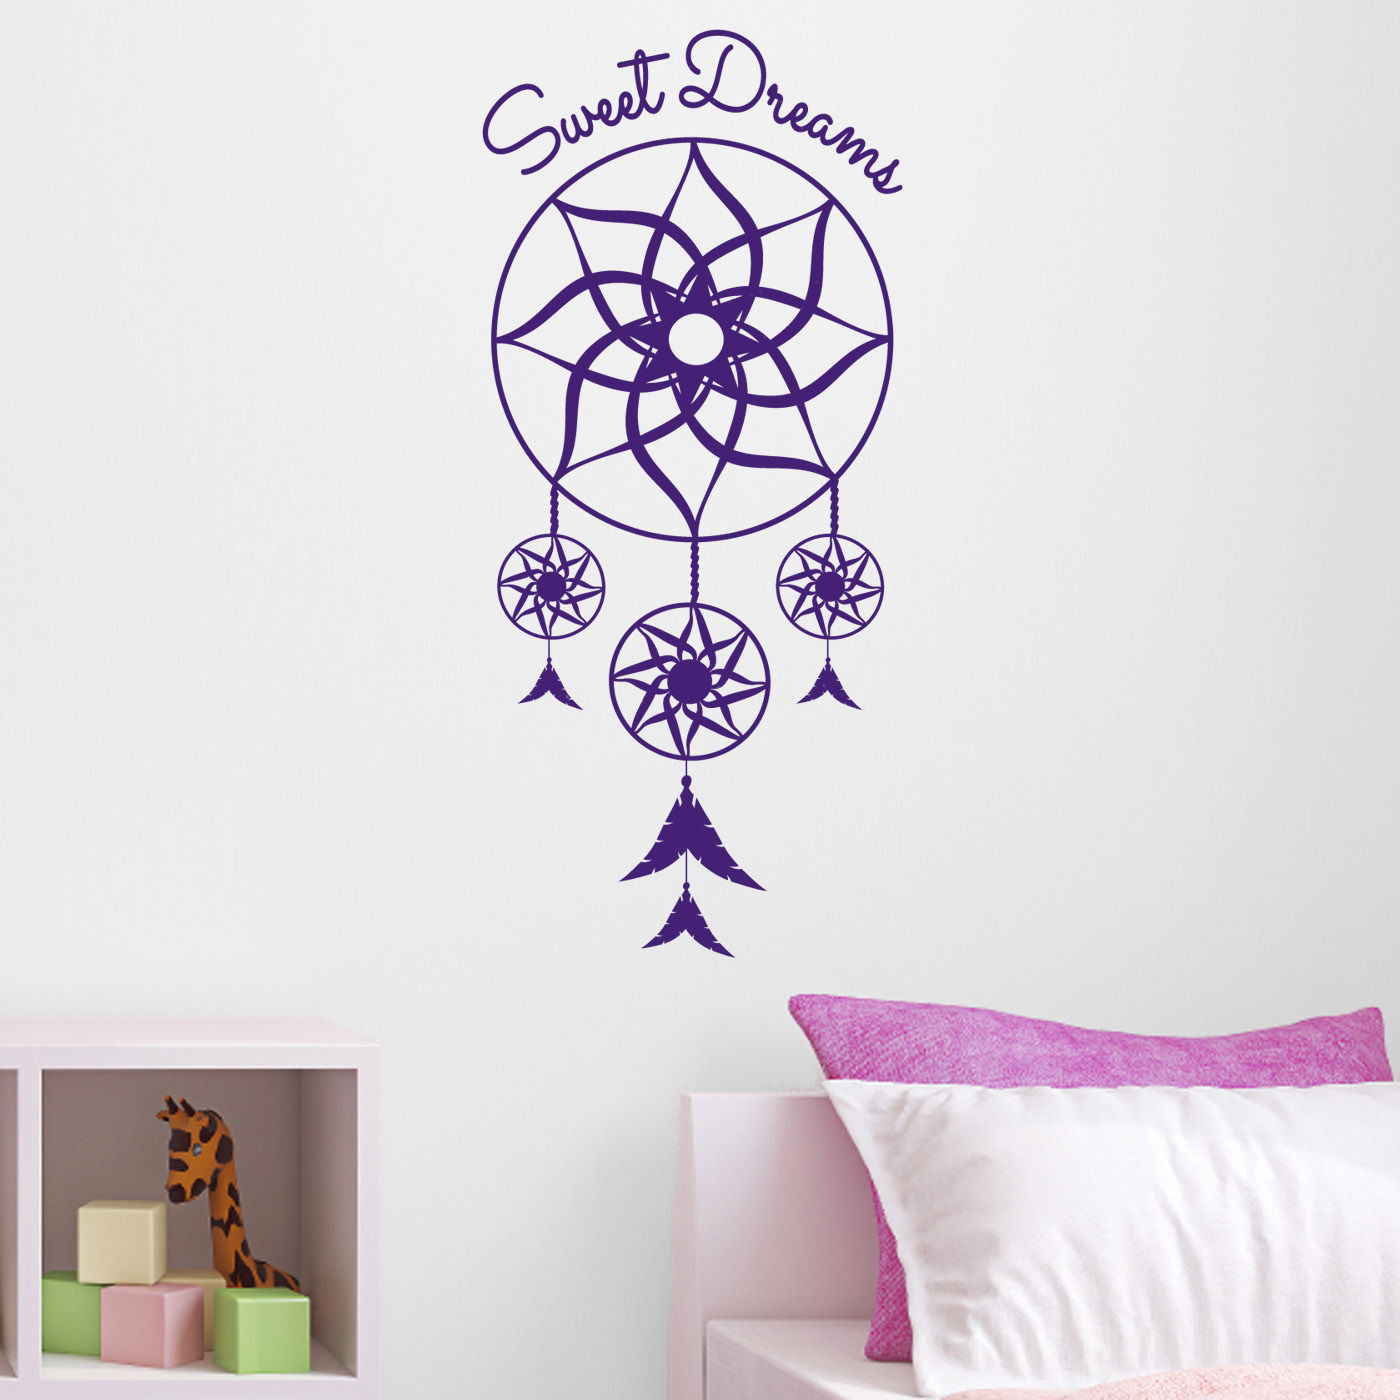 Sweet Dreams Dream Catcher Wall Sticker Dreamcatcher Bedroom Wall